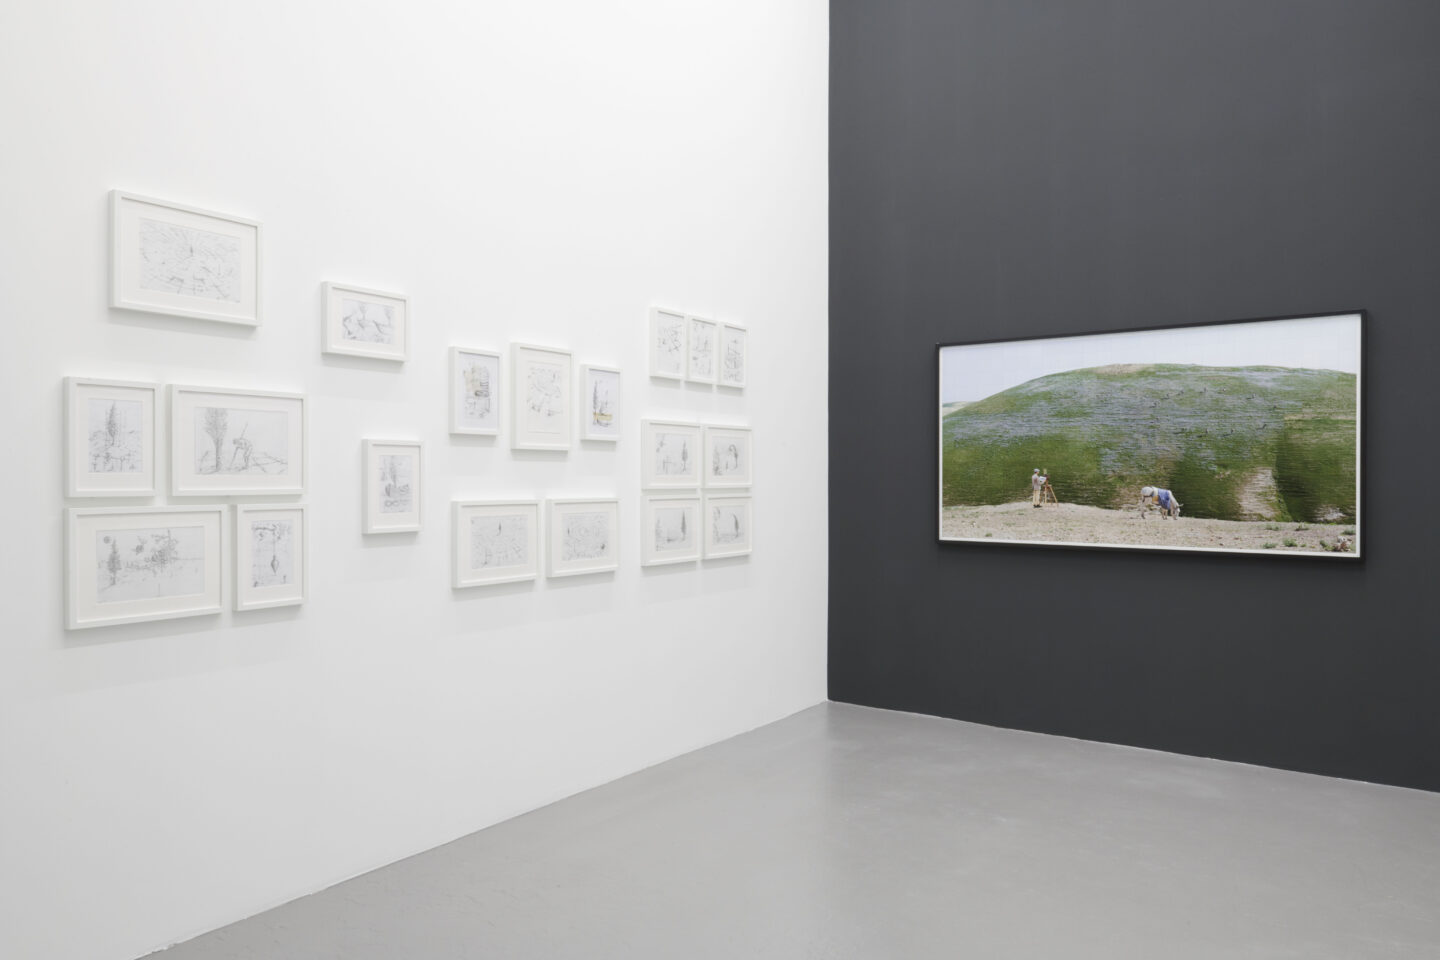 Exhibition View Yuval Yairi Soloshow «Cyphers & Cypresses» at Fabienne Levy, Lausanne, 2019 / Photo: Guillaume Baeriswyl / Courtesy: the artist and Fabienne Levy